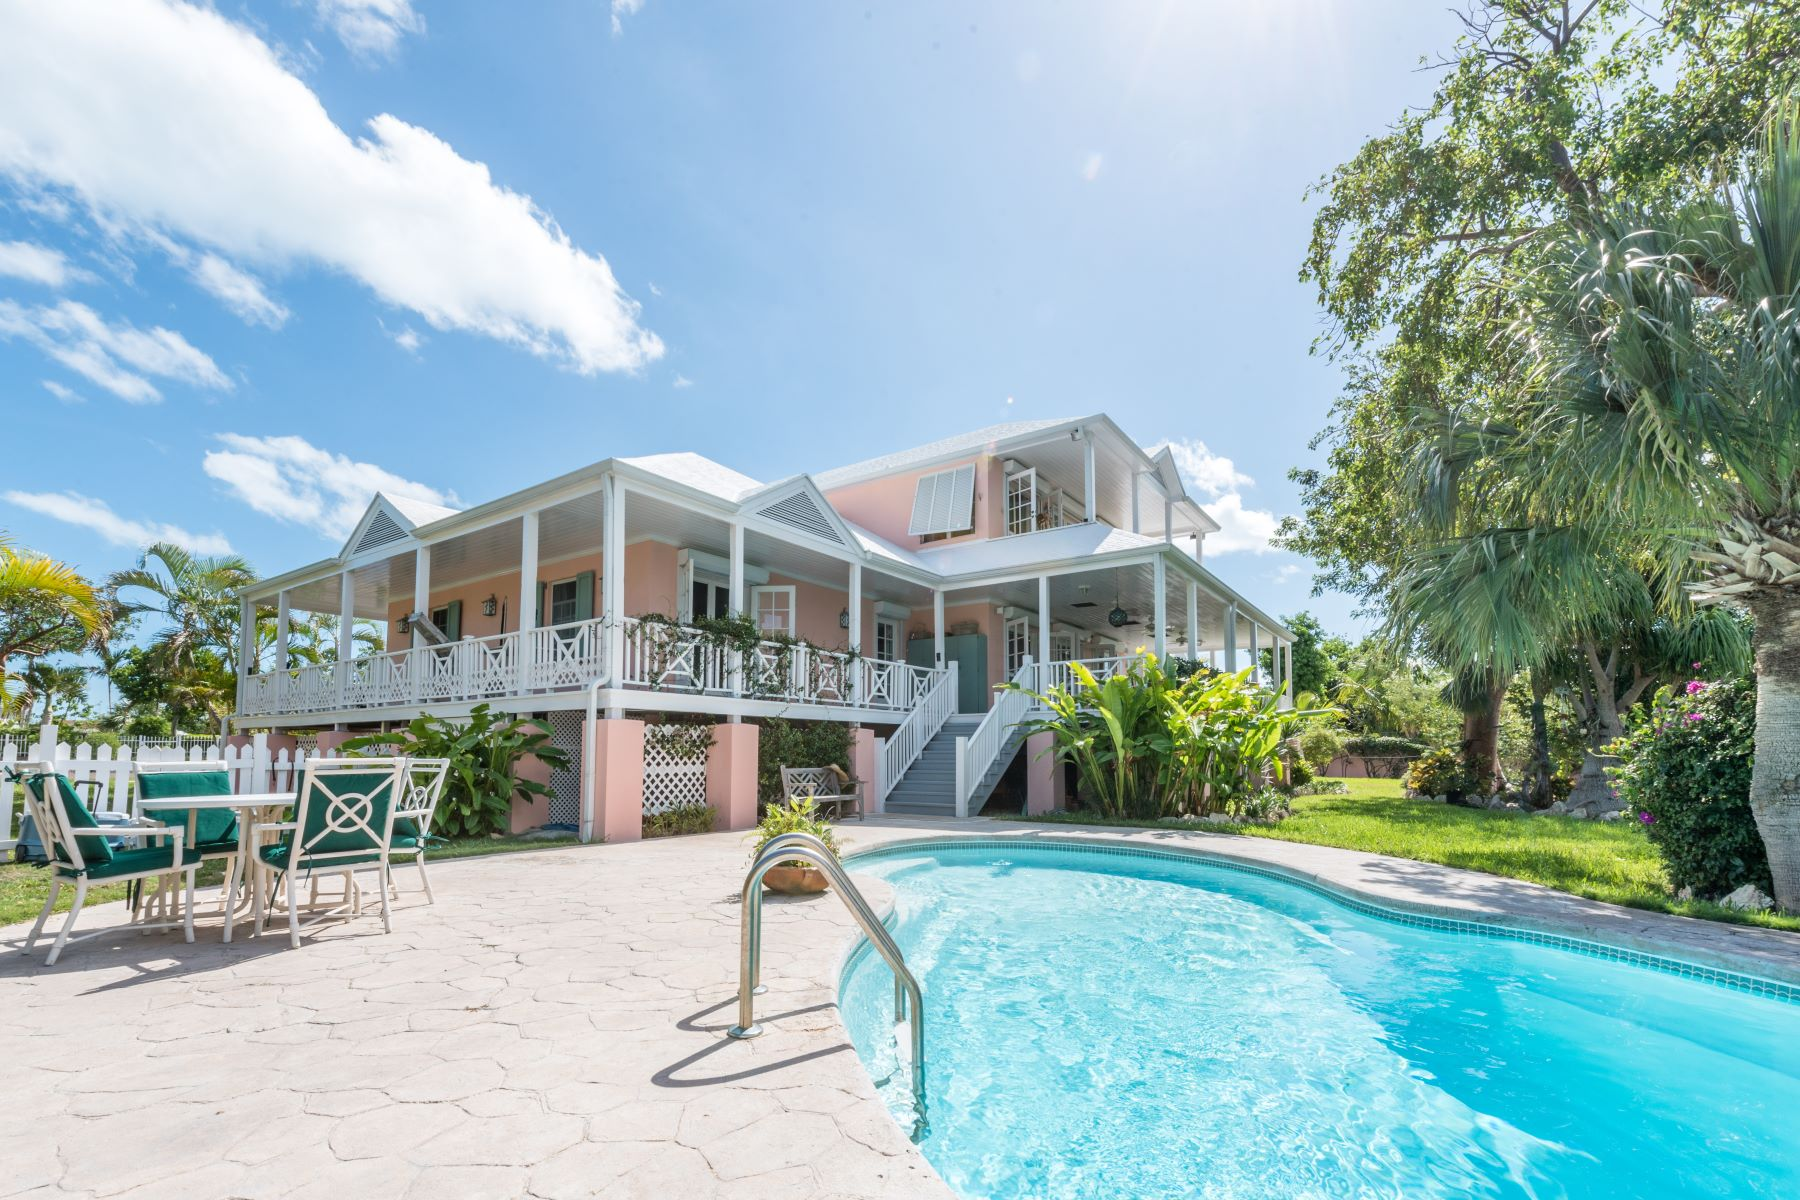 Single Family Home for Sale at 24 Island Drive, Port New Providence Port New Providence, Yamacraw, Nassau And Paradise Island Bahamas